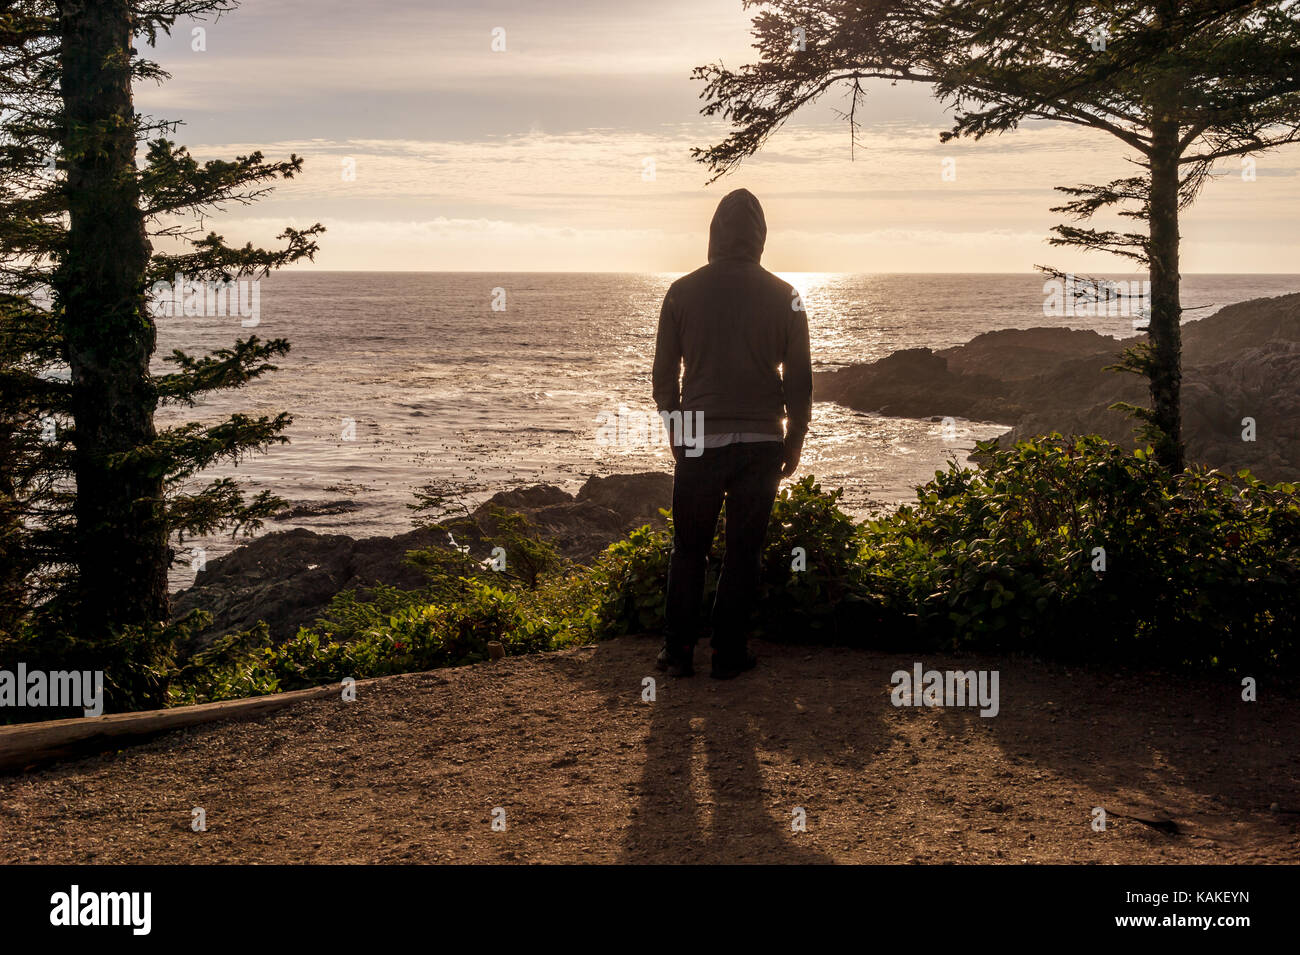 standing man overlooking sea on Vancouver Island at sunset - Stock Image